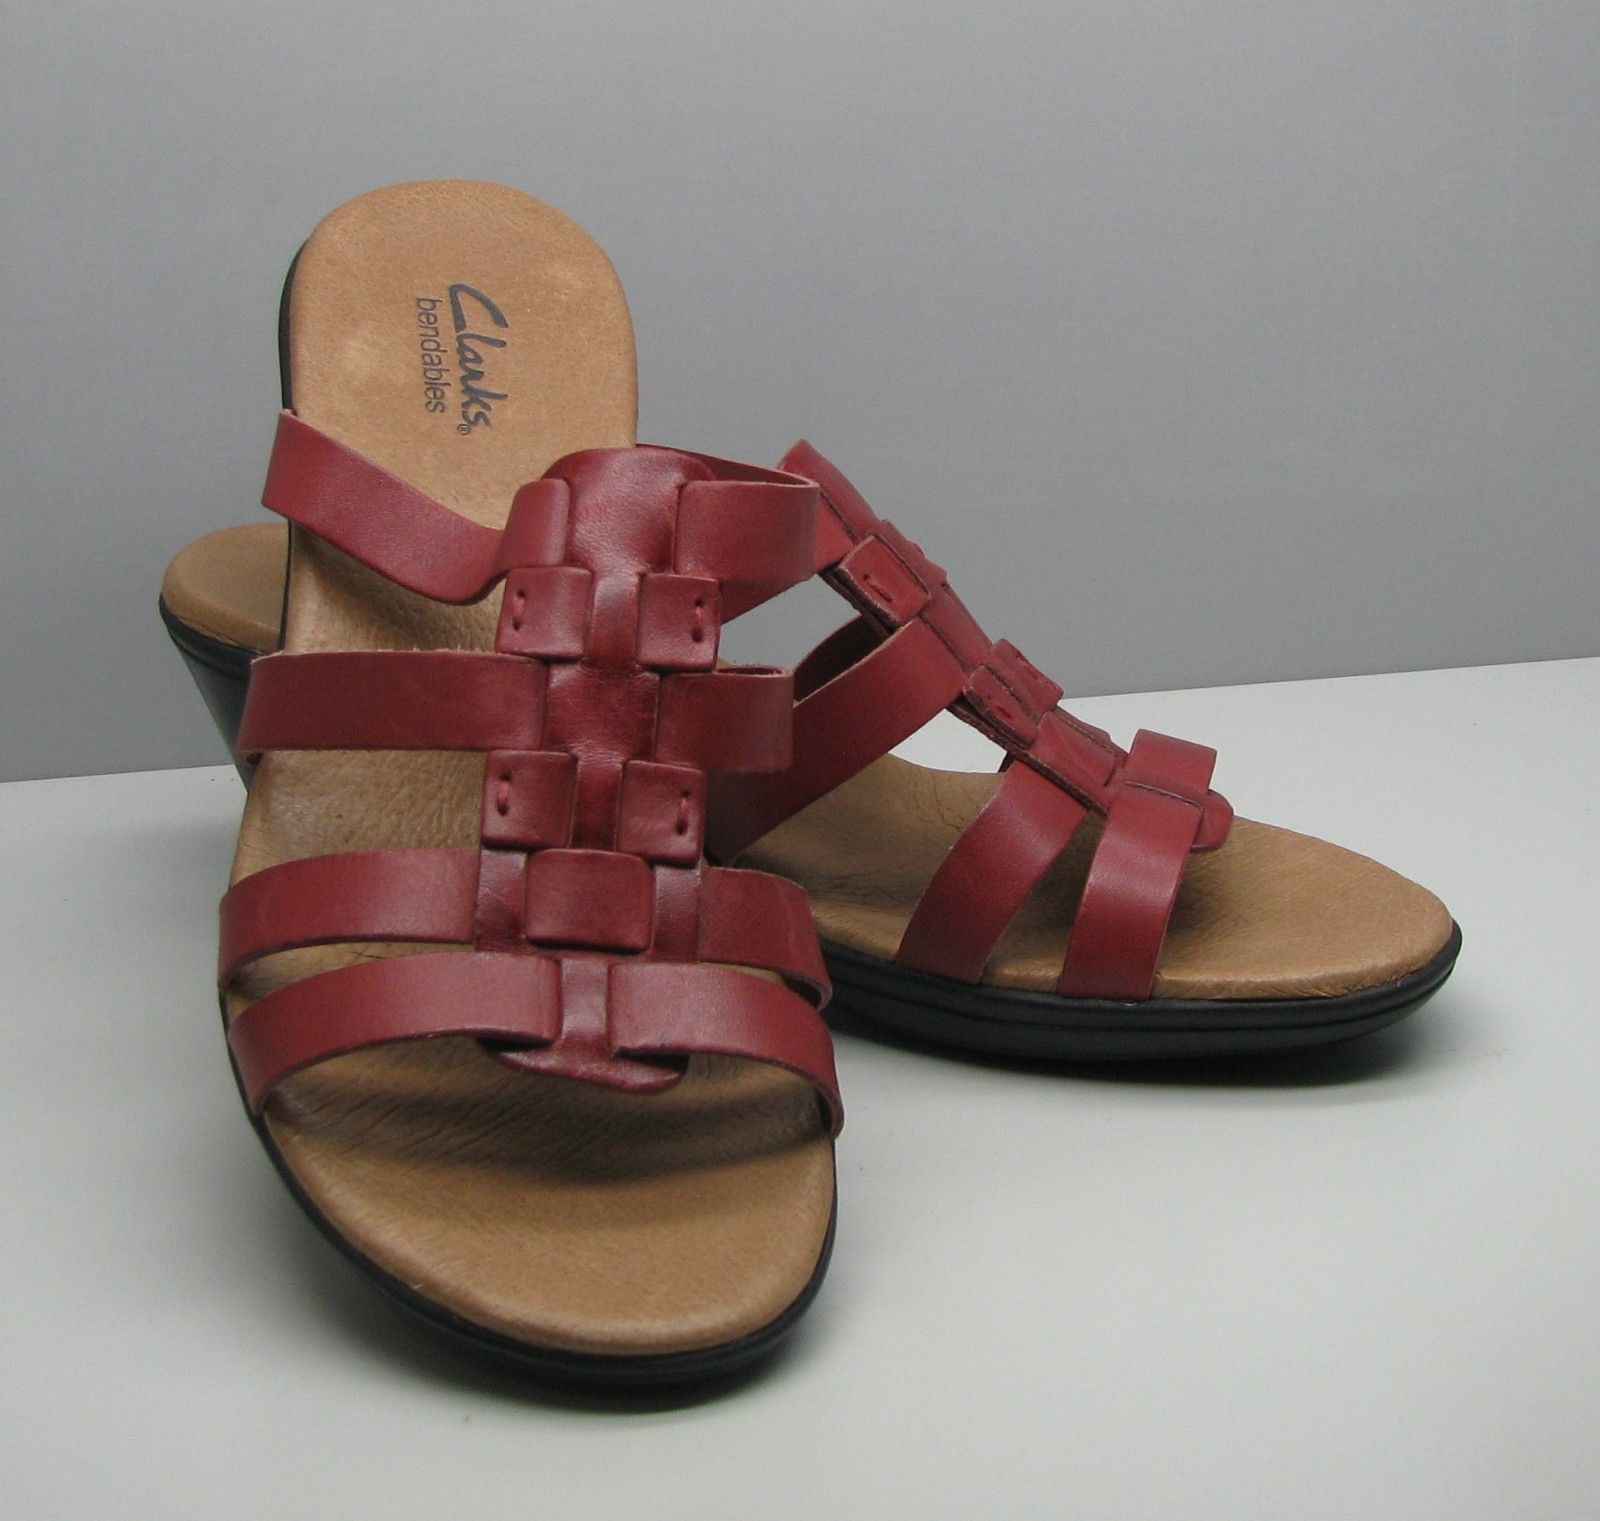 Primary image for Clarks Bendables Woman's 7.5 M SHOES Red Burgundy Leather Sandals w Heel